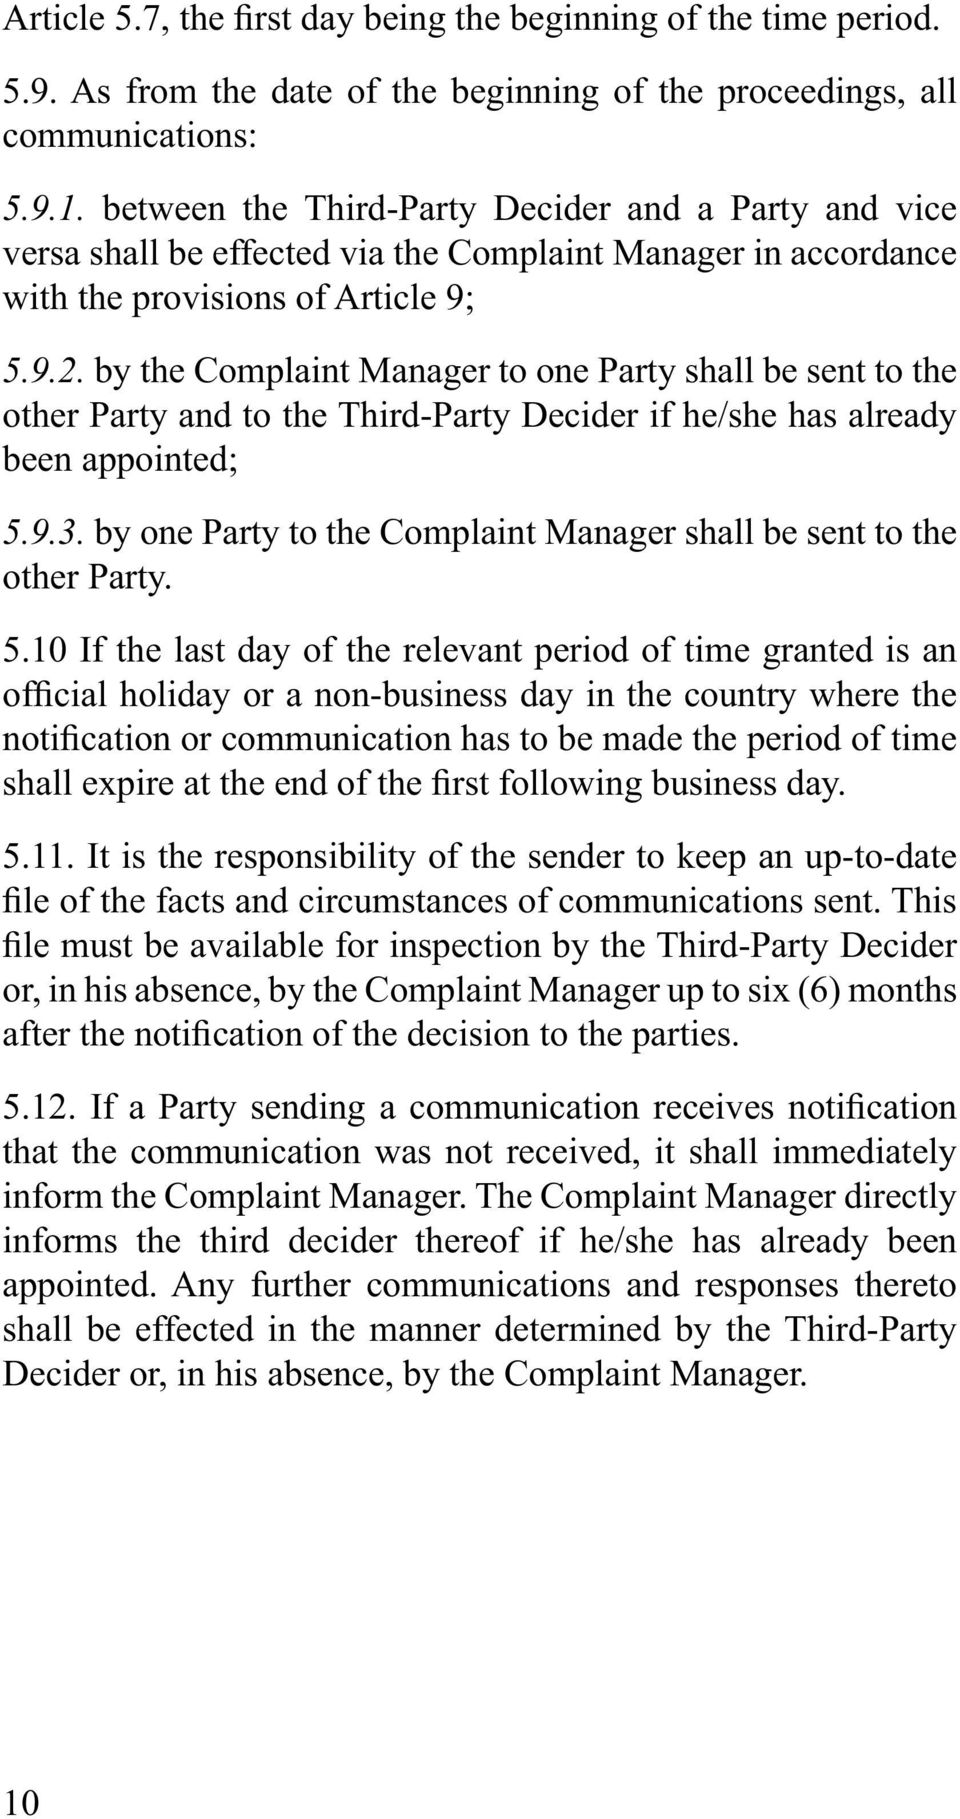 by the Complaint Manager to one Party shall be sent to the other Party and to the Third-Party Decider if he/she has already been appointed; 5.9.3.